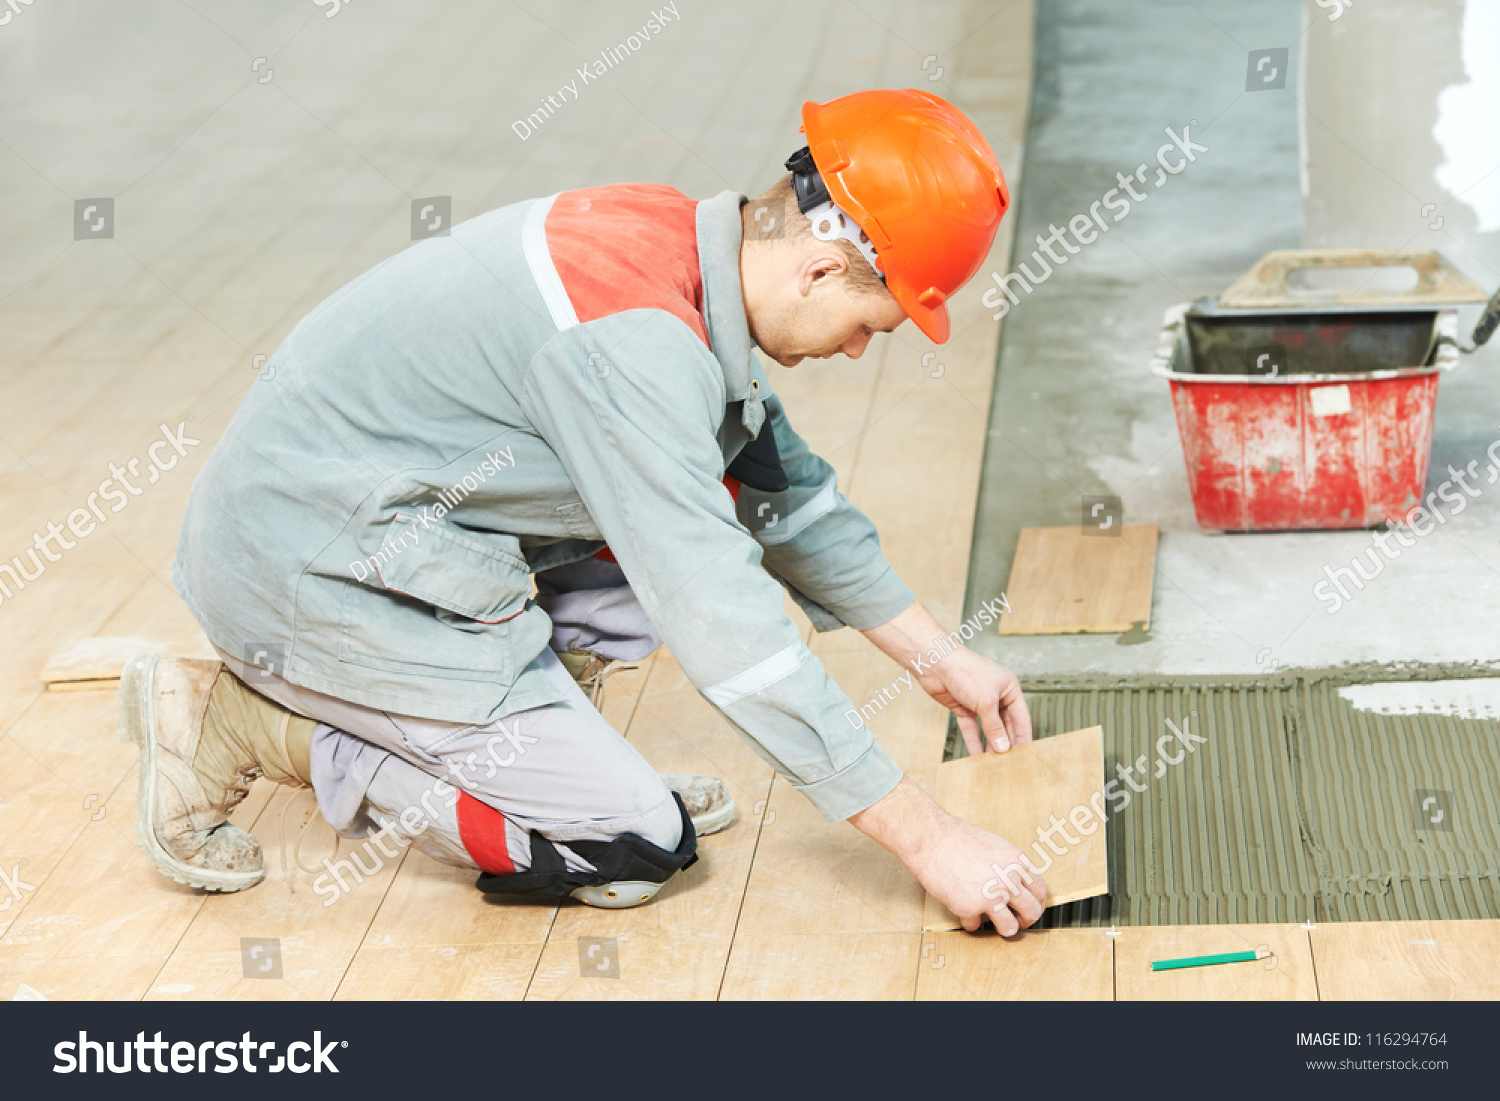 Industrial tiler builder worker installing floor stock photo industrial tiler builder worker installing floor tile at repair renovation work dailygadgetfo Gallery